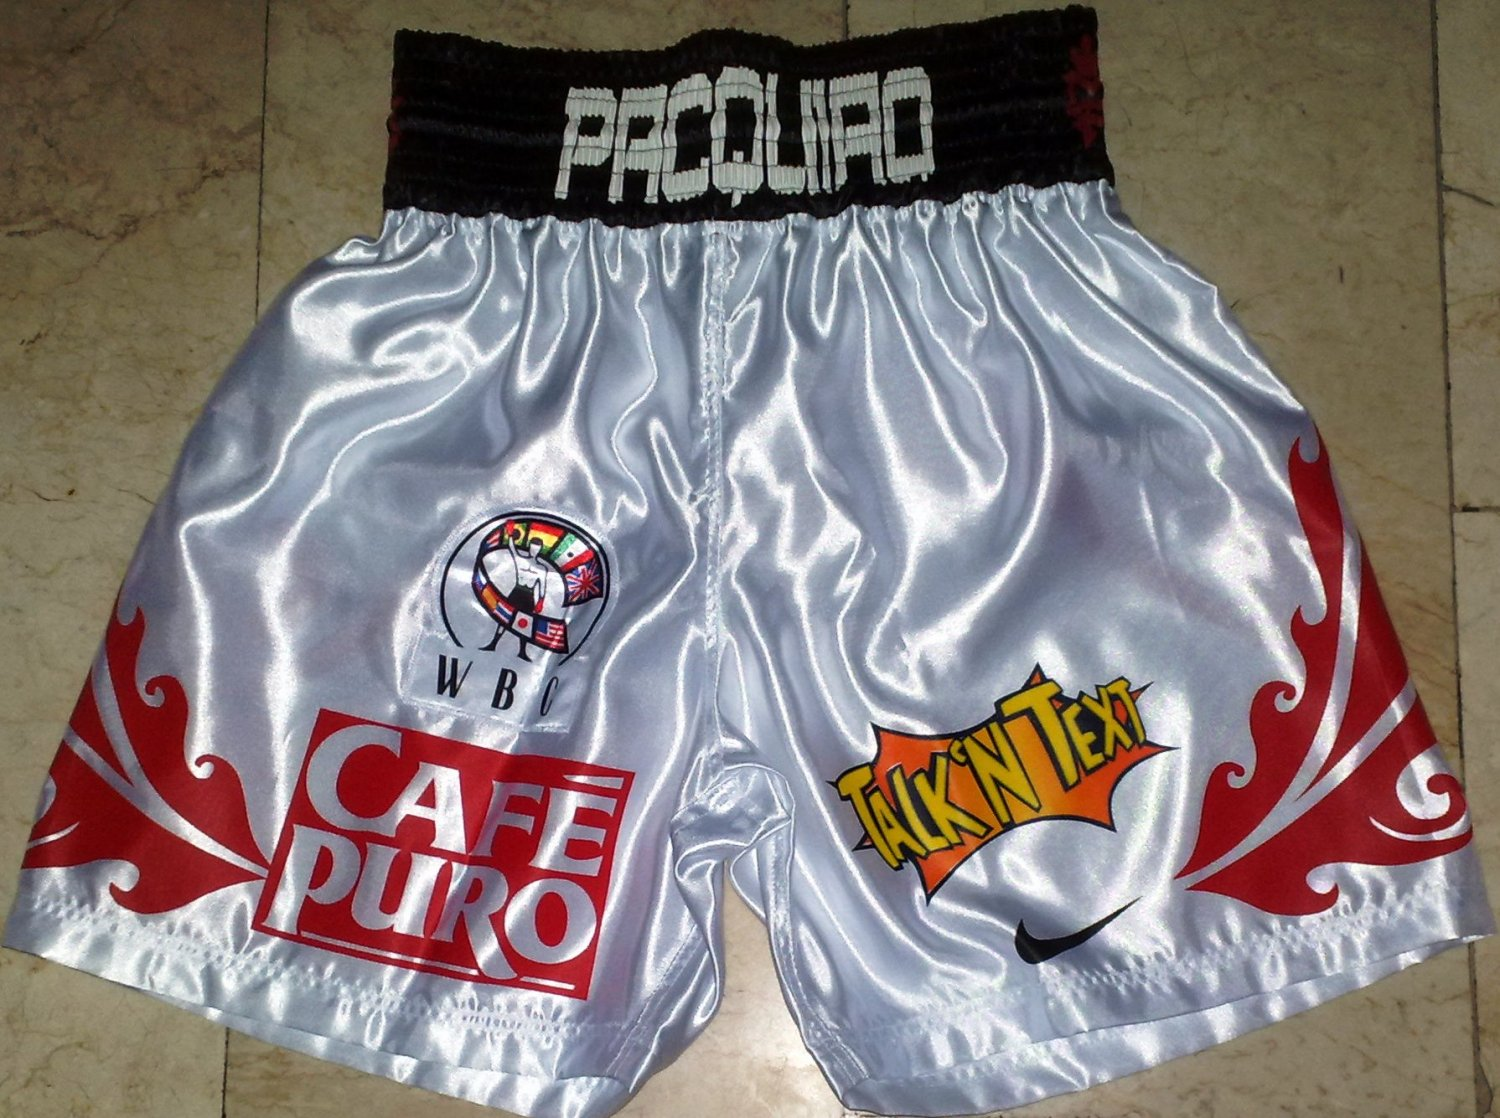 MANNY PACQUIAO Boxing Trunks vs. MARQUEZ 2 sz XL New